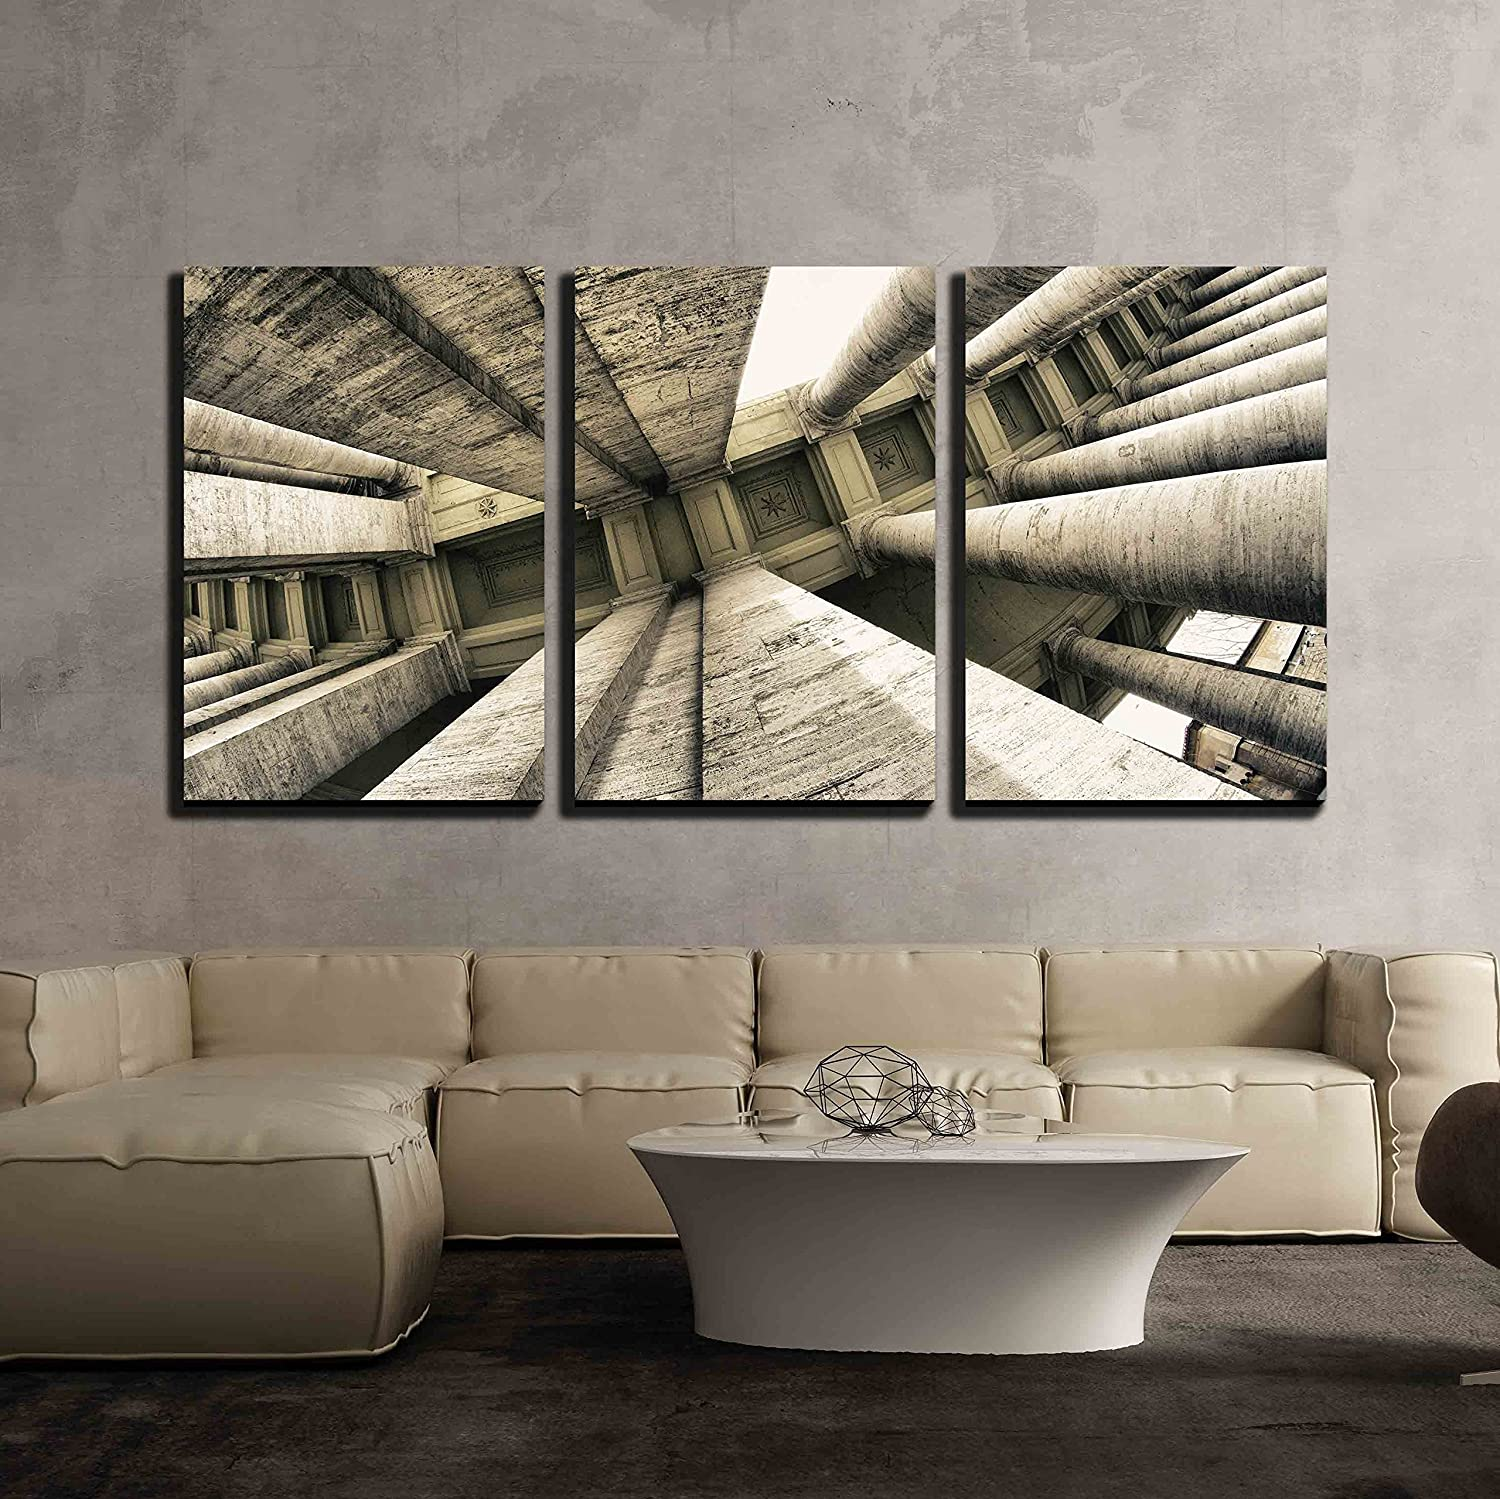 Charming Technique, That You Will Love, St Peter Square in Rome Wall Decor x3 Panels